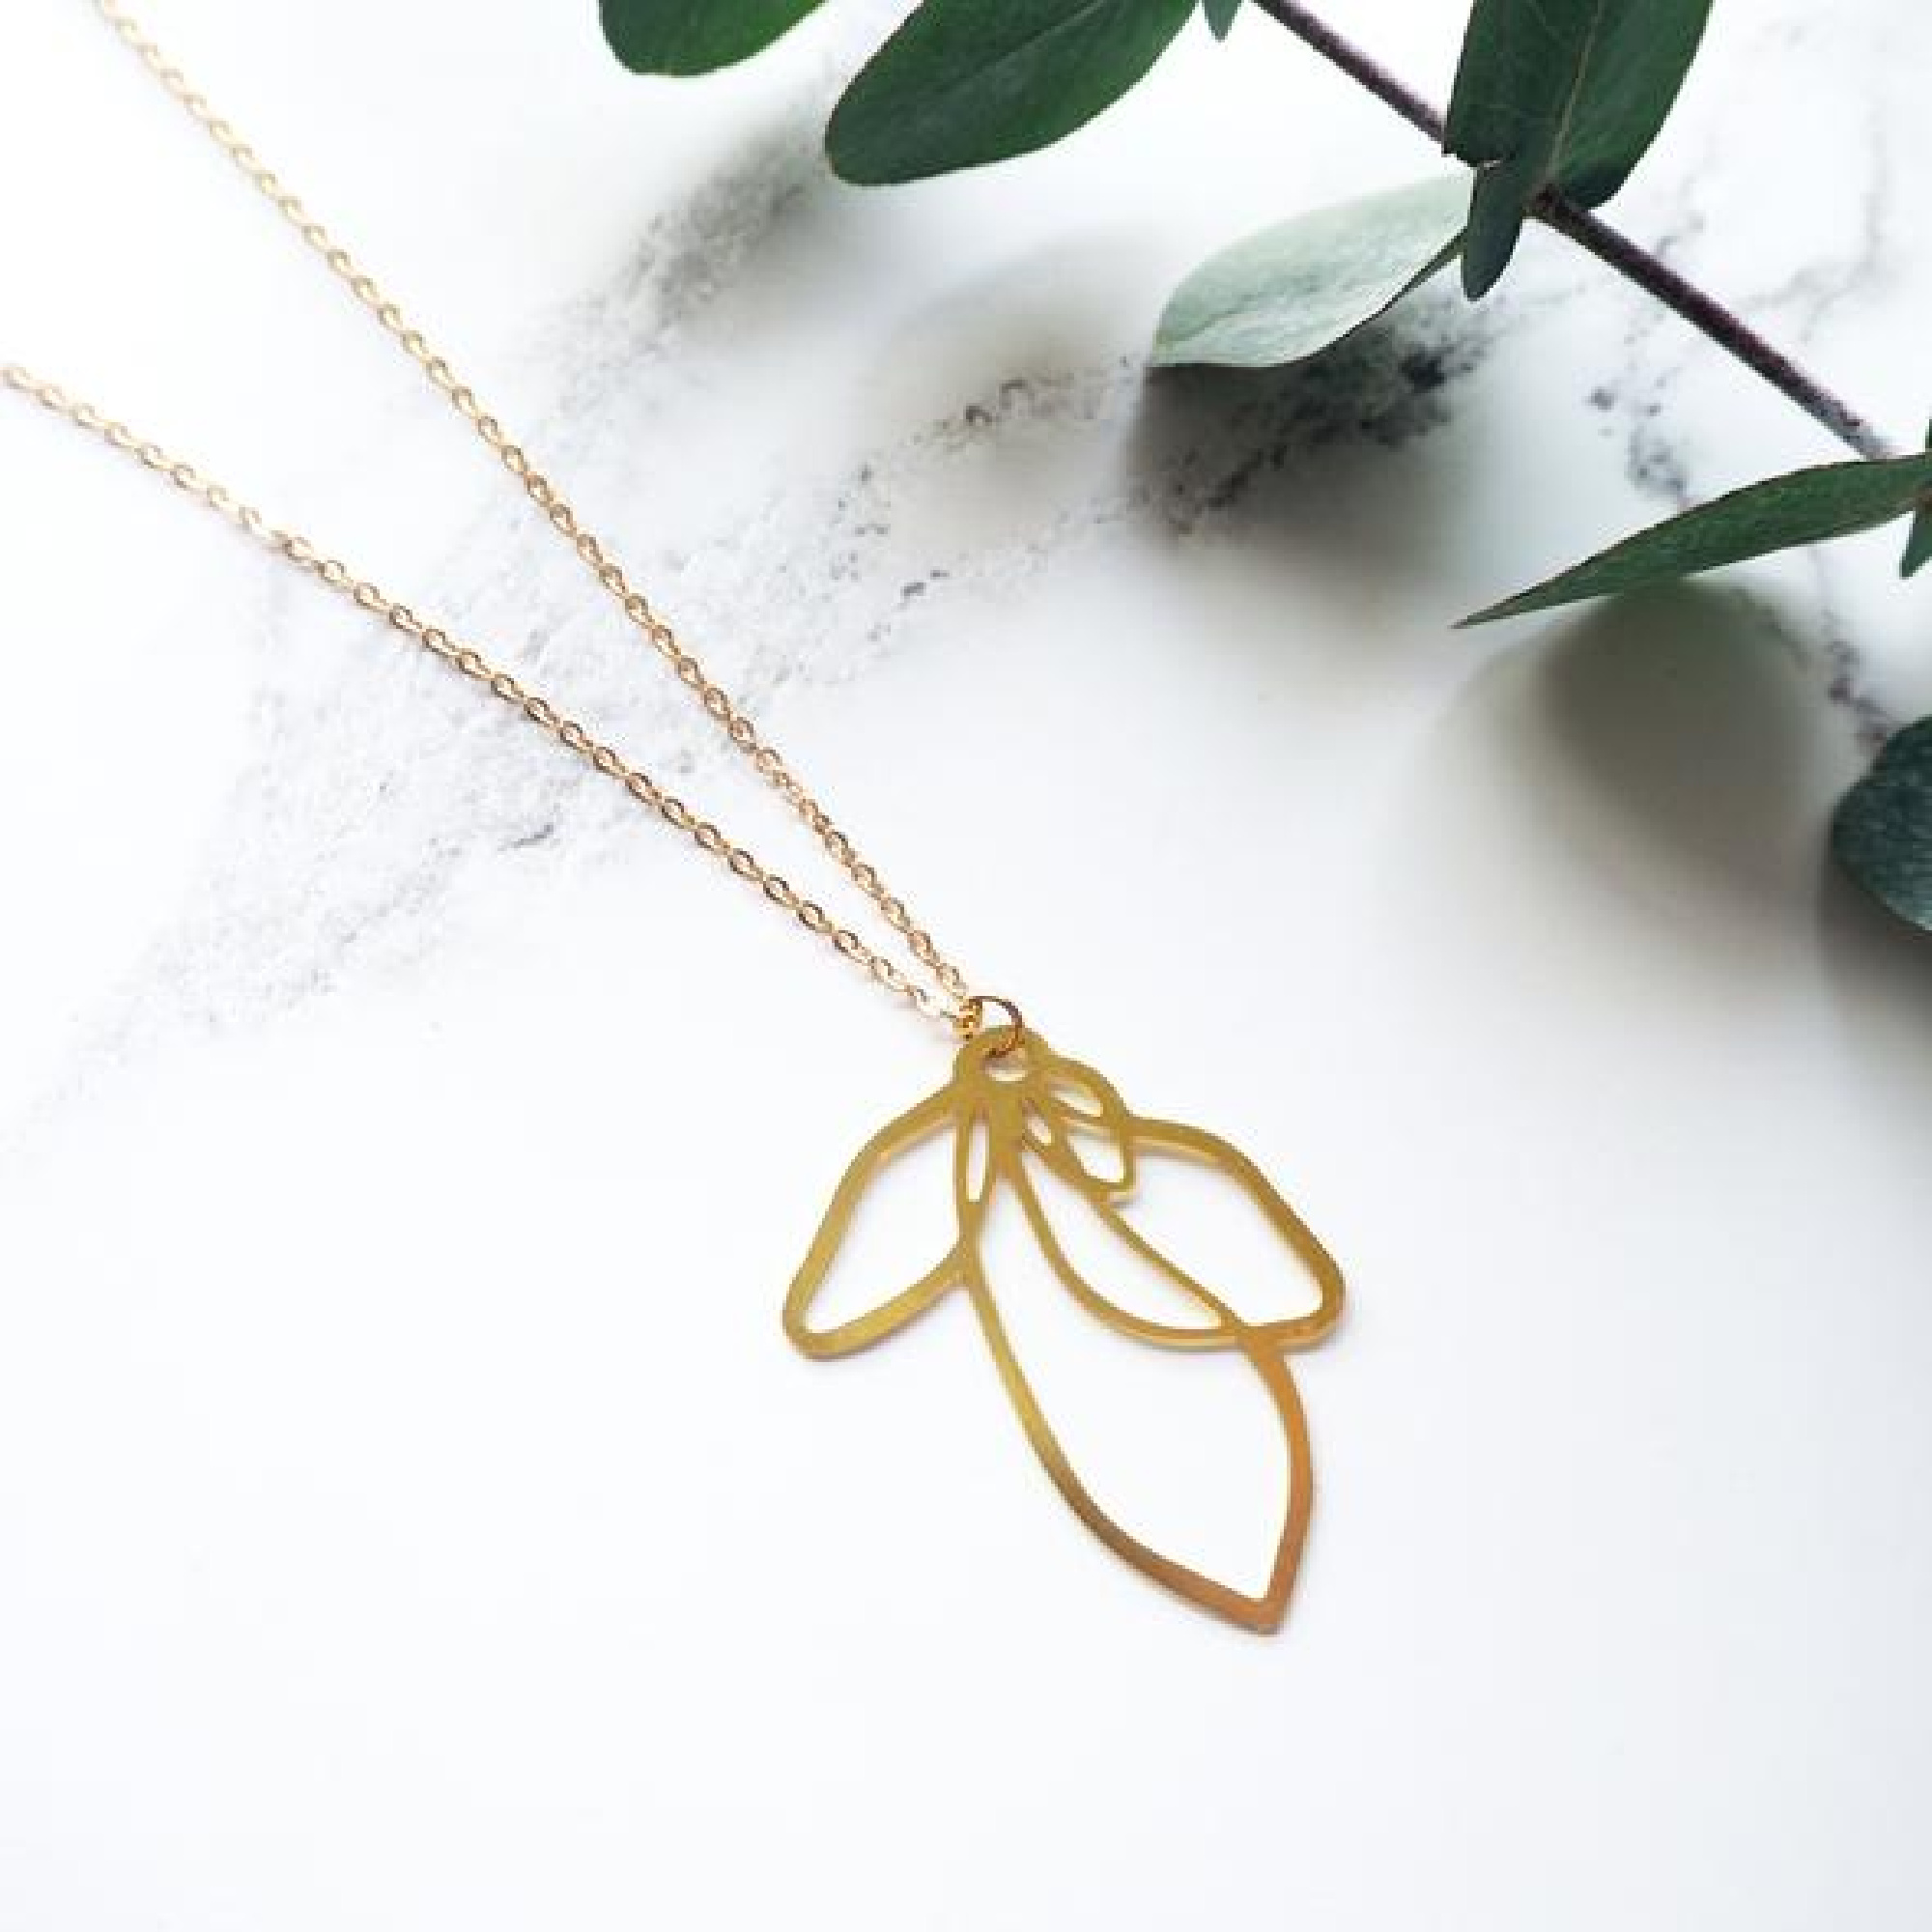 Petal Necklace by Mica Peet